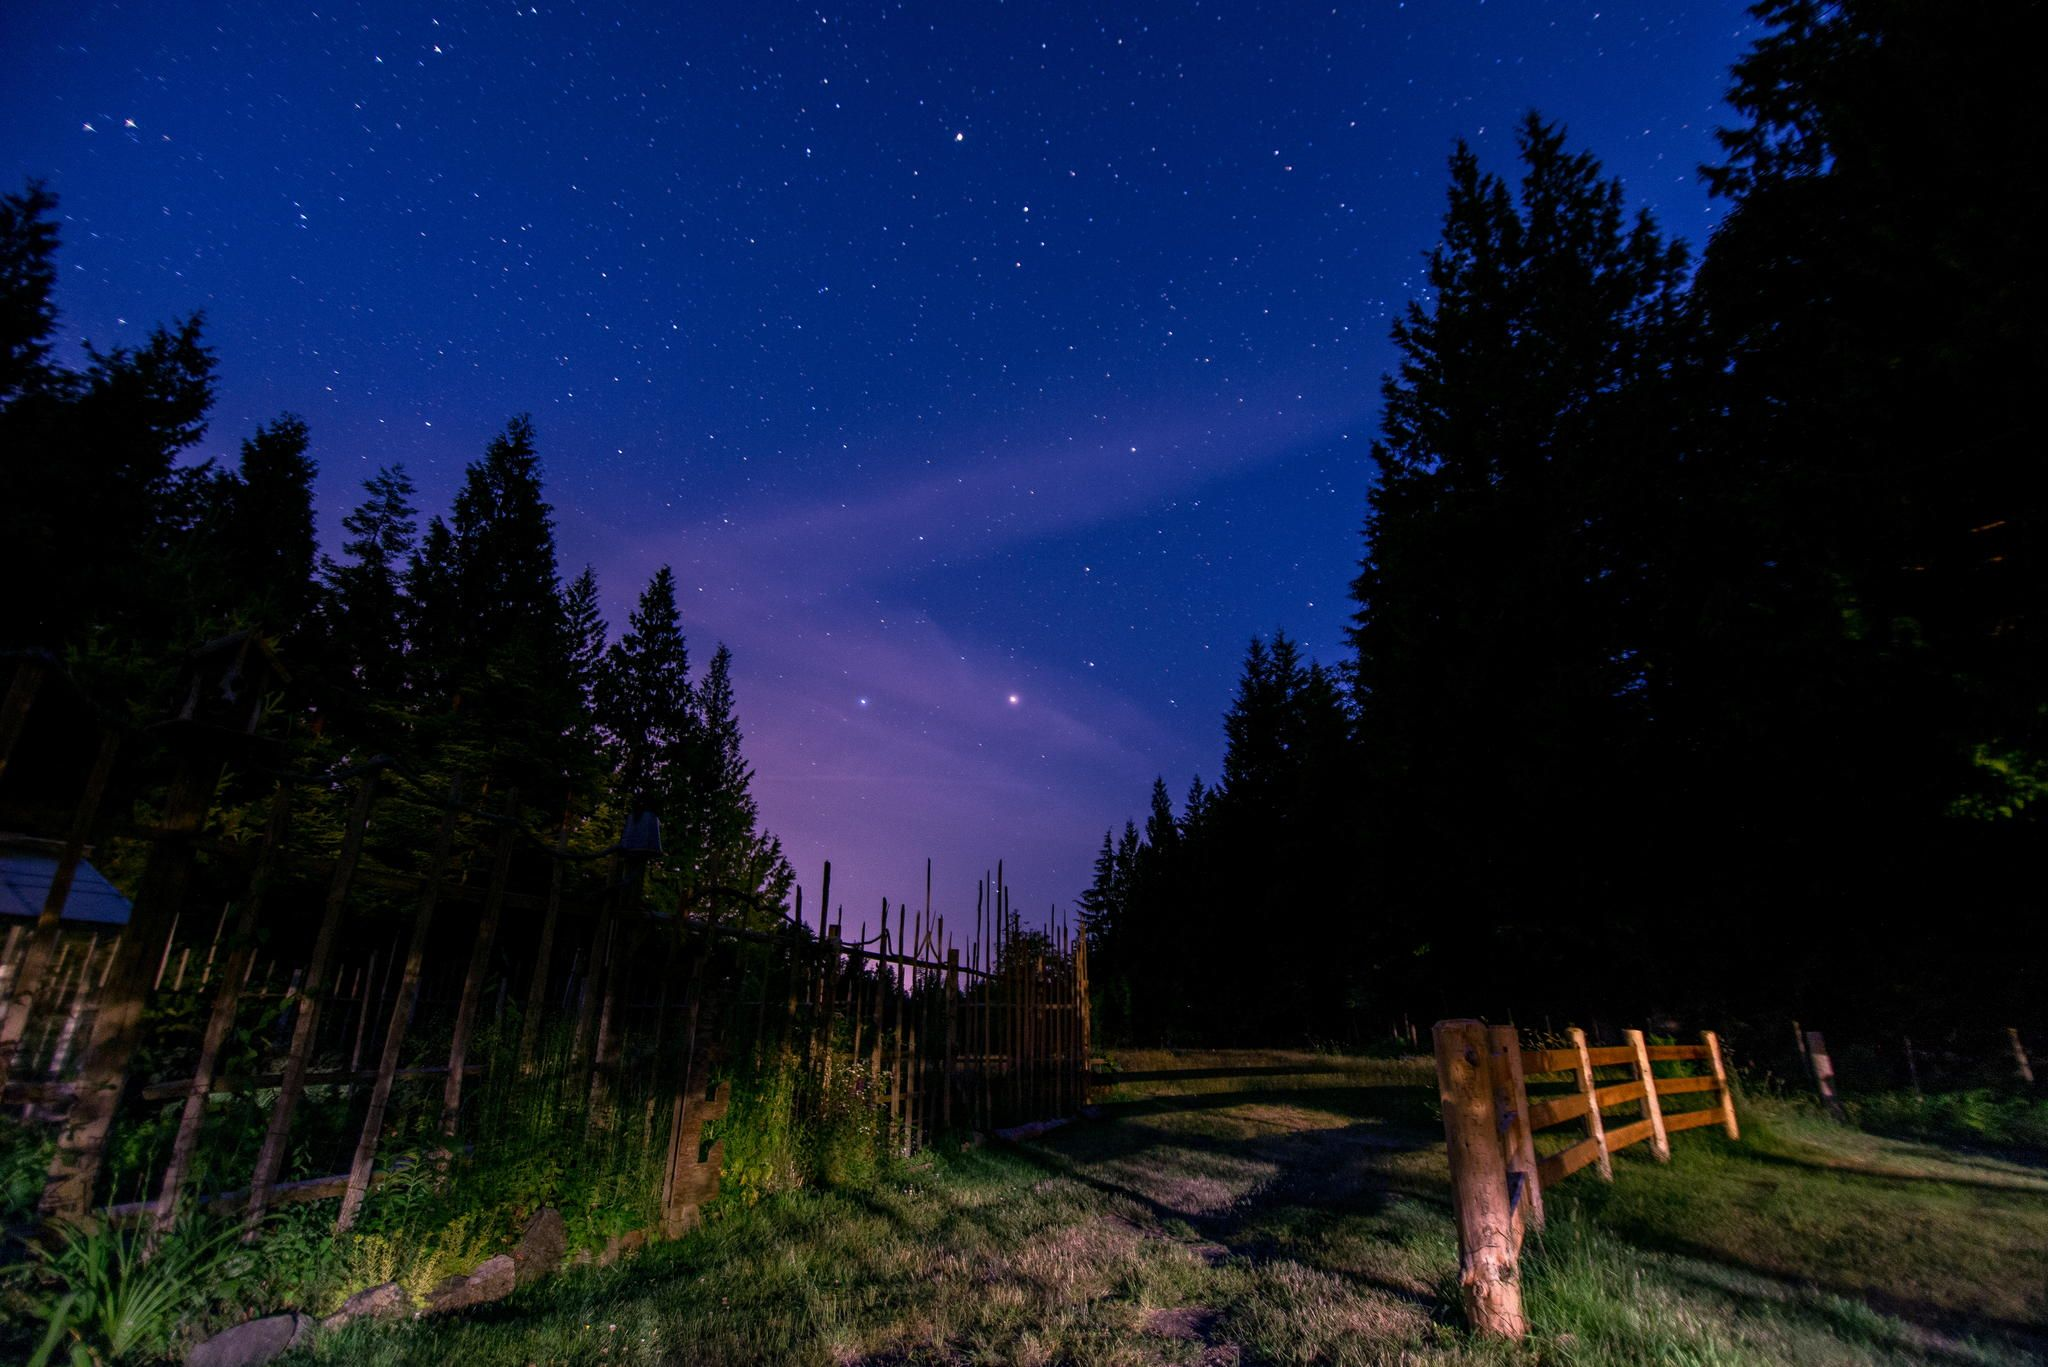 A night on Rocky Road Farm by Jaden Nyberg on 500px